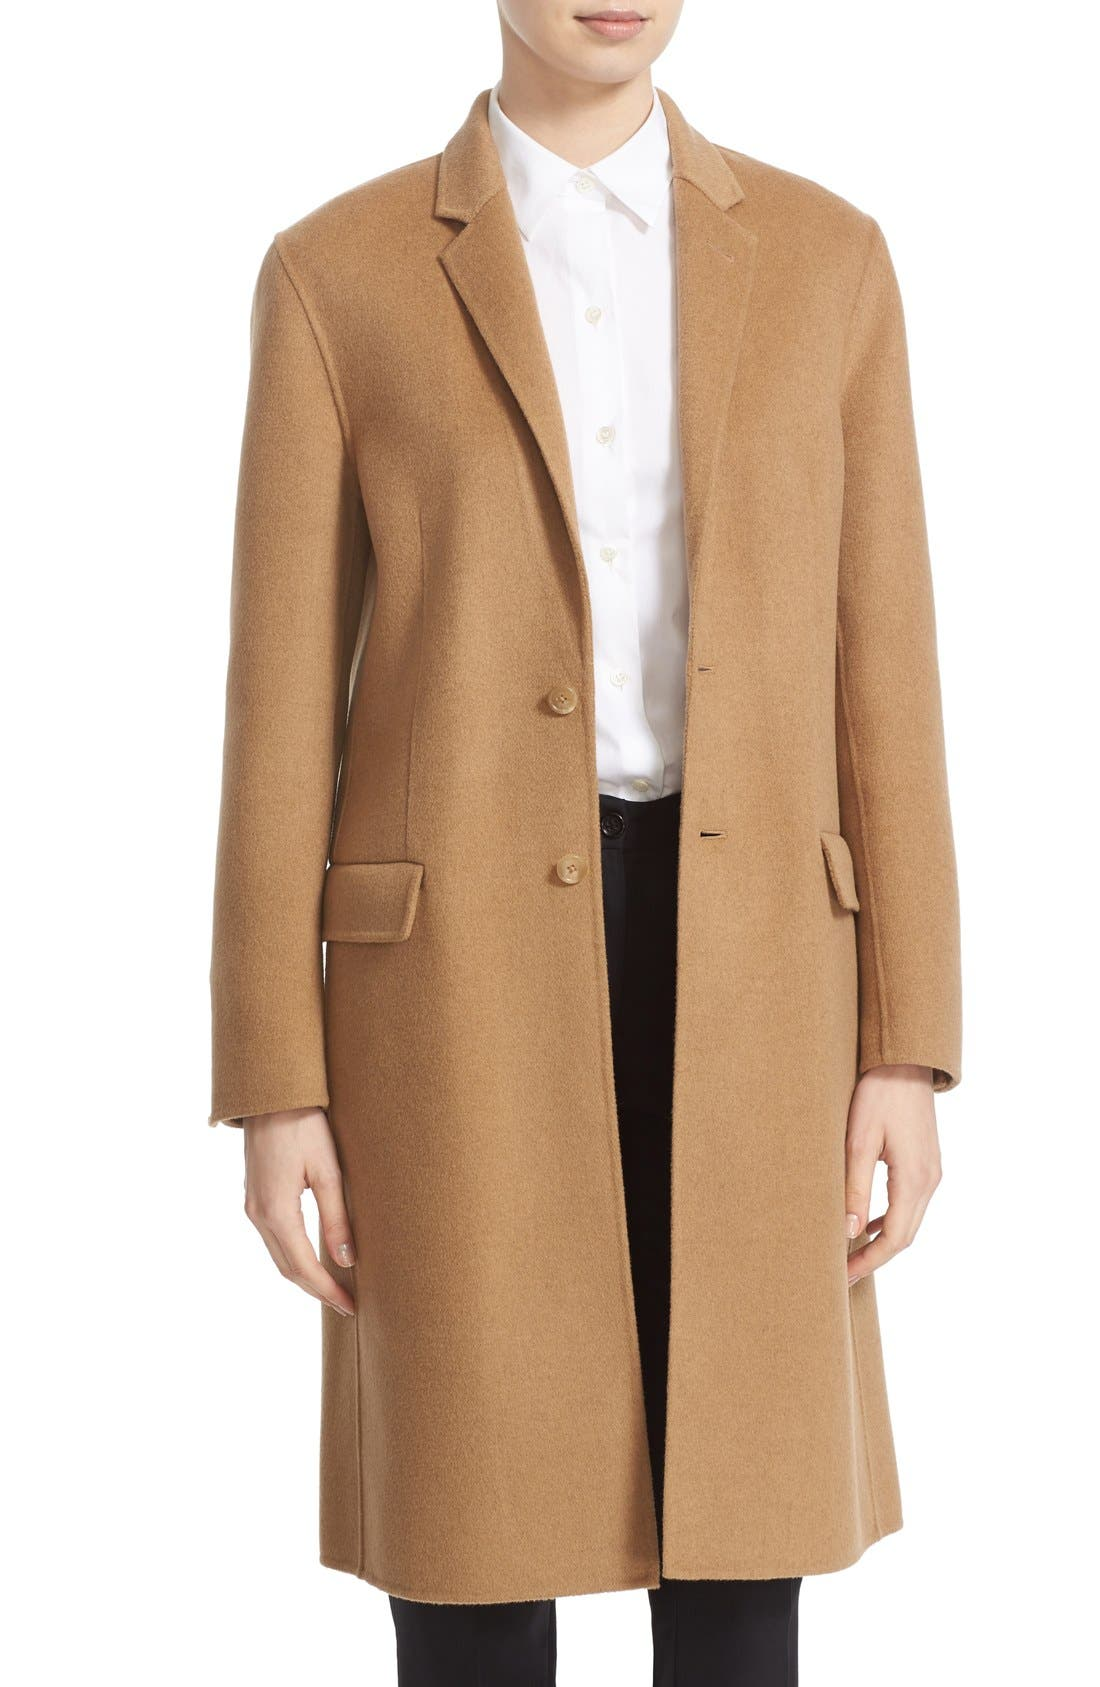 Main Image - JOSEPH 'Caversham' Double Face Wool & Cashmere Coat